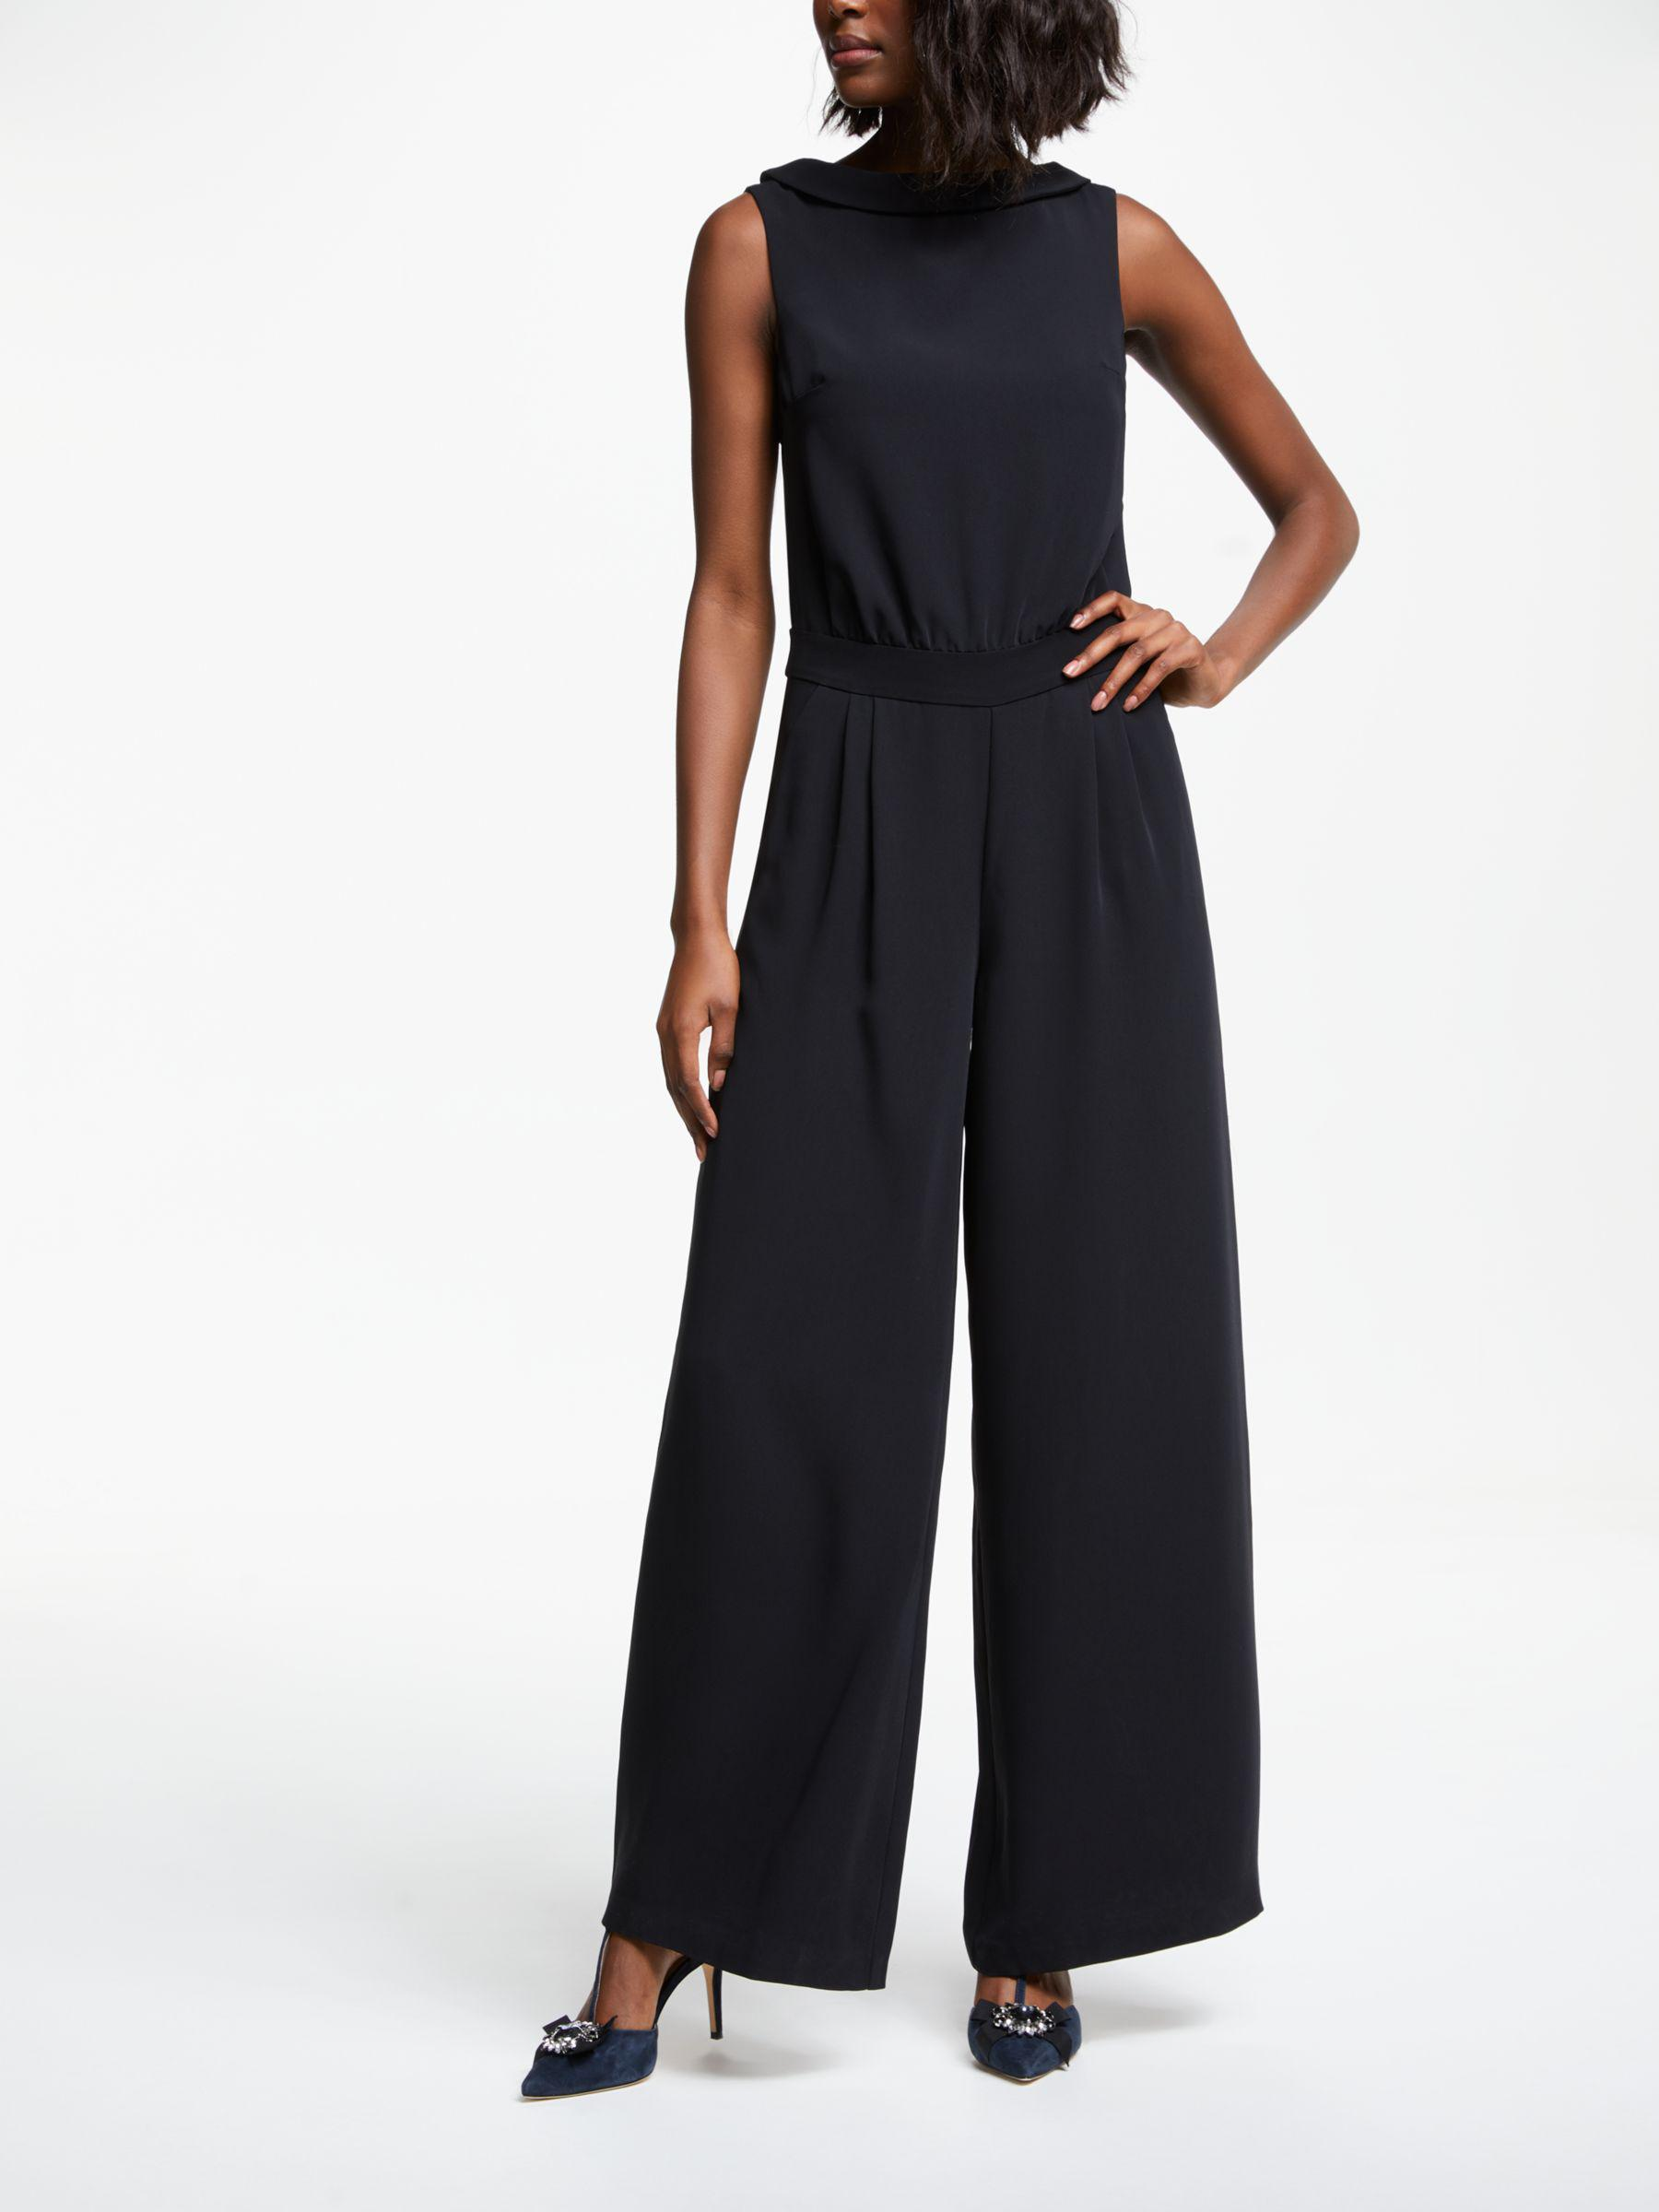 d5aa27941ef Boden. Women s Black Clarissa Jumpsuit. £140 From John Lewis and Partners